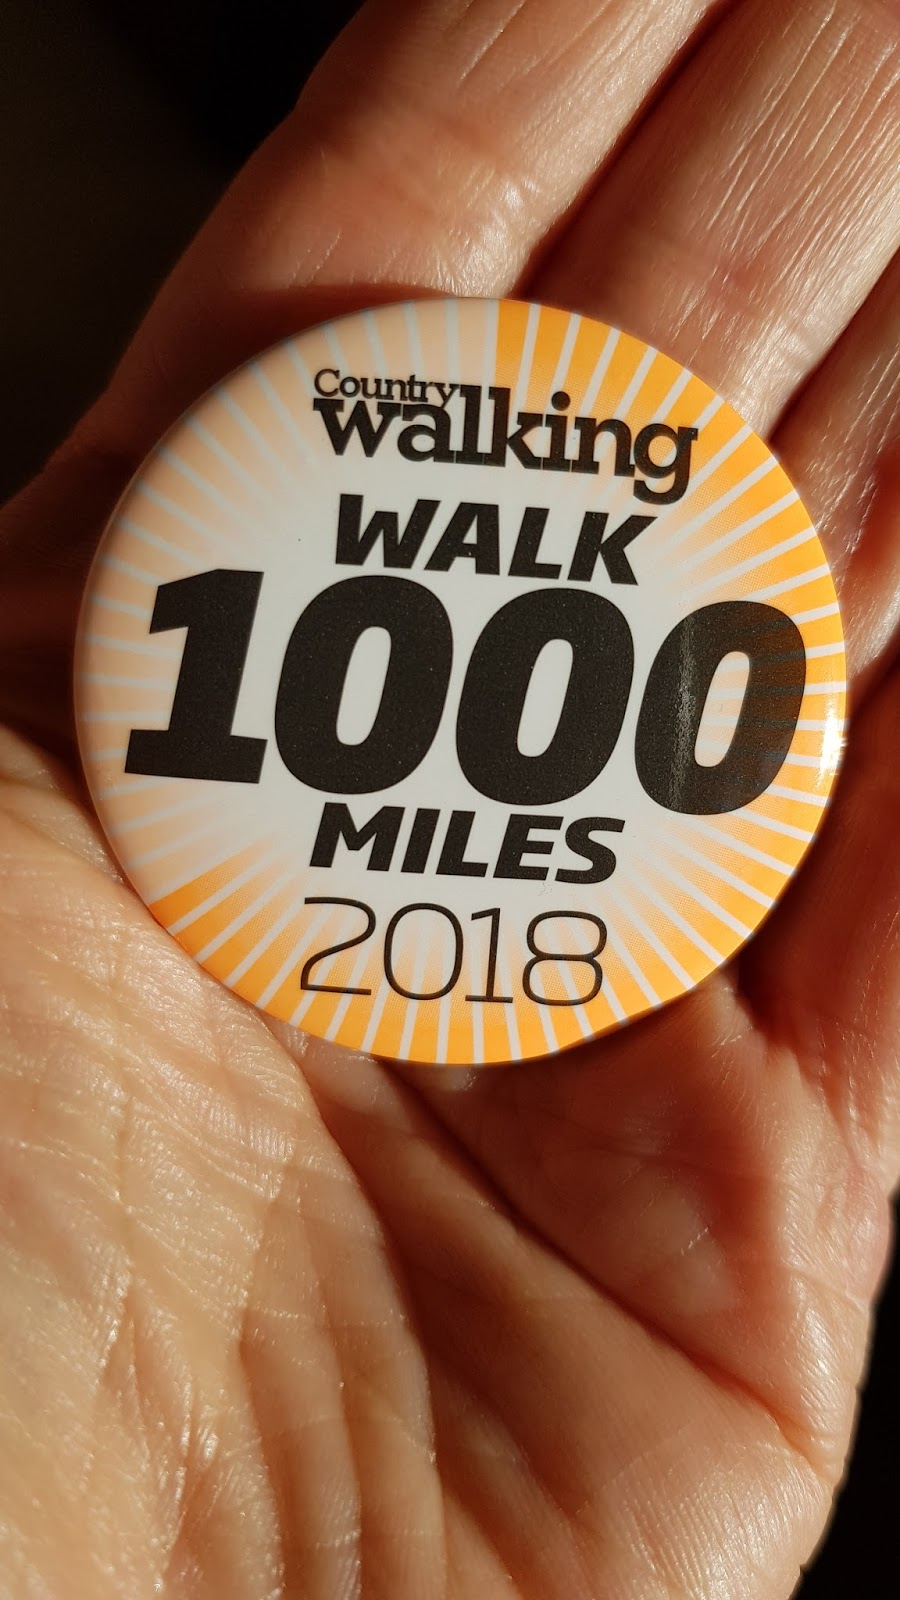 Image showing the 2018 Walk 1000 Miles challenge badge from Country Walking magazine